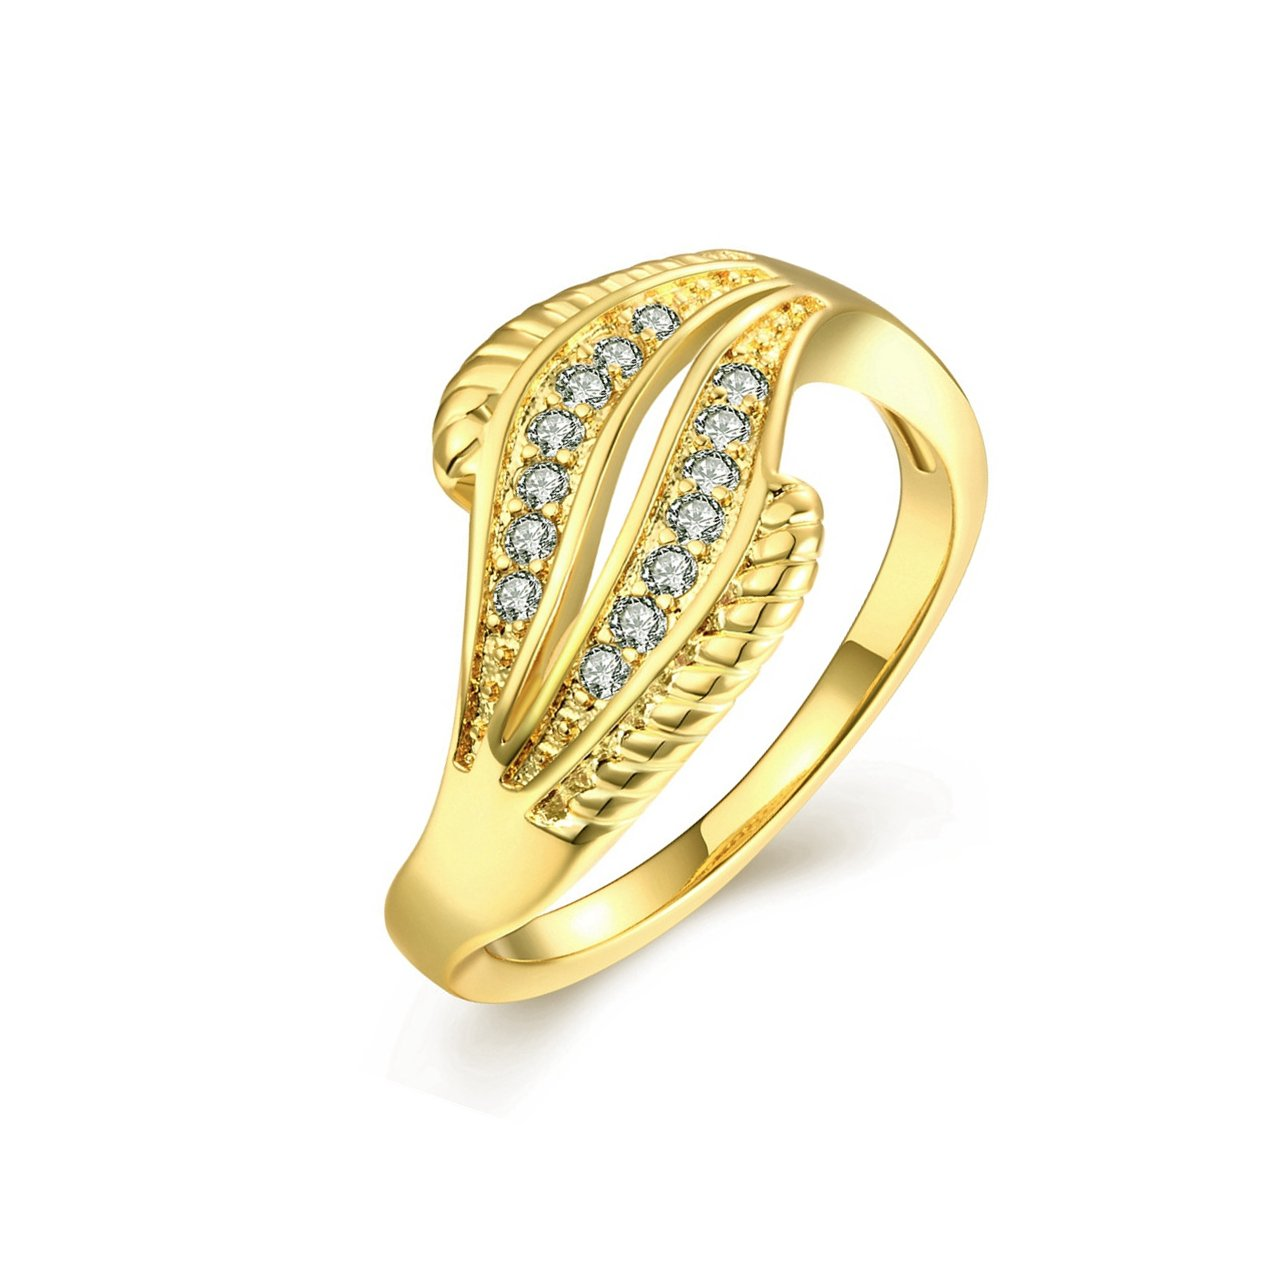 18K Gold Plated Wave Ring Wedding Band Statement Jewelry Simulated Diamond Infinity Love